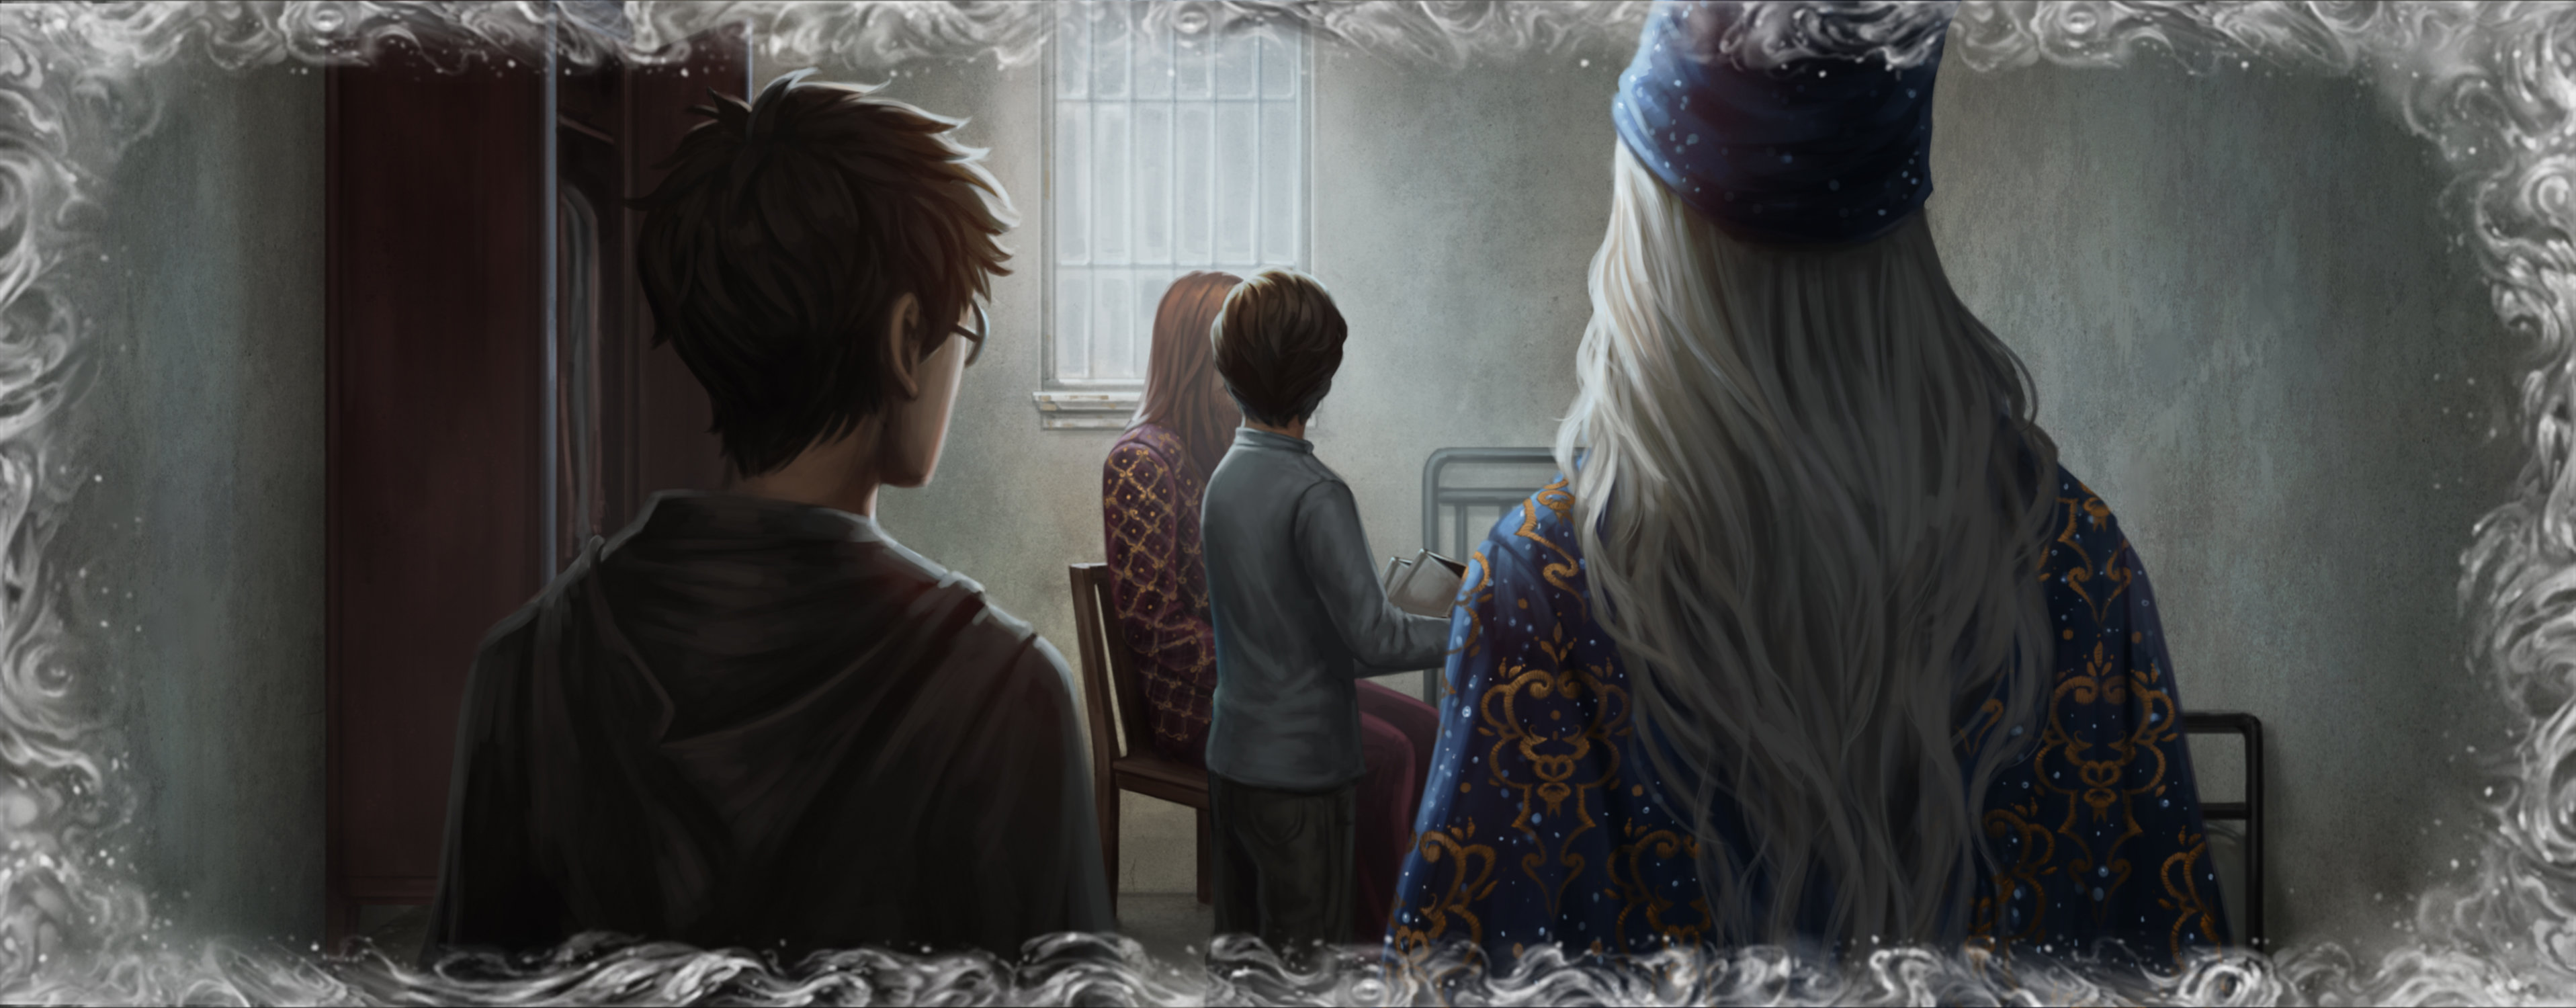 Dumbledore and Harry watch Tom Riddle as a child in a memory.